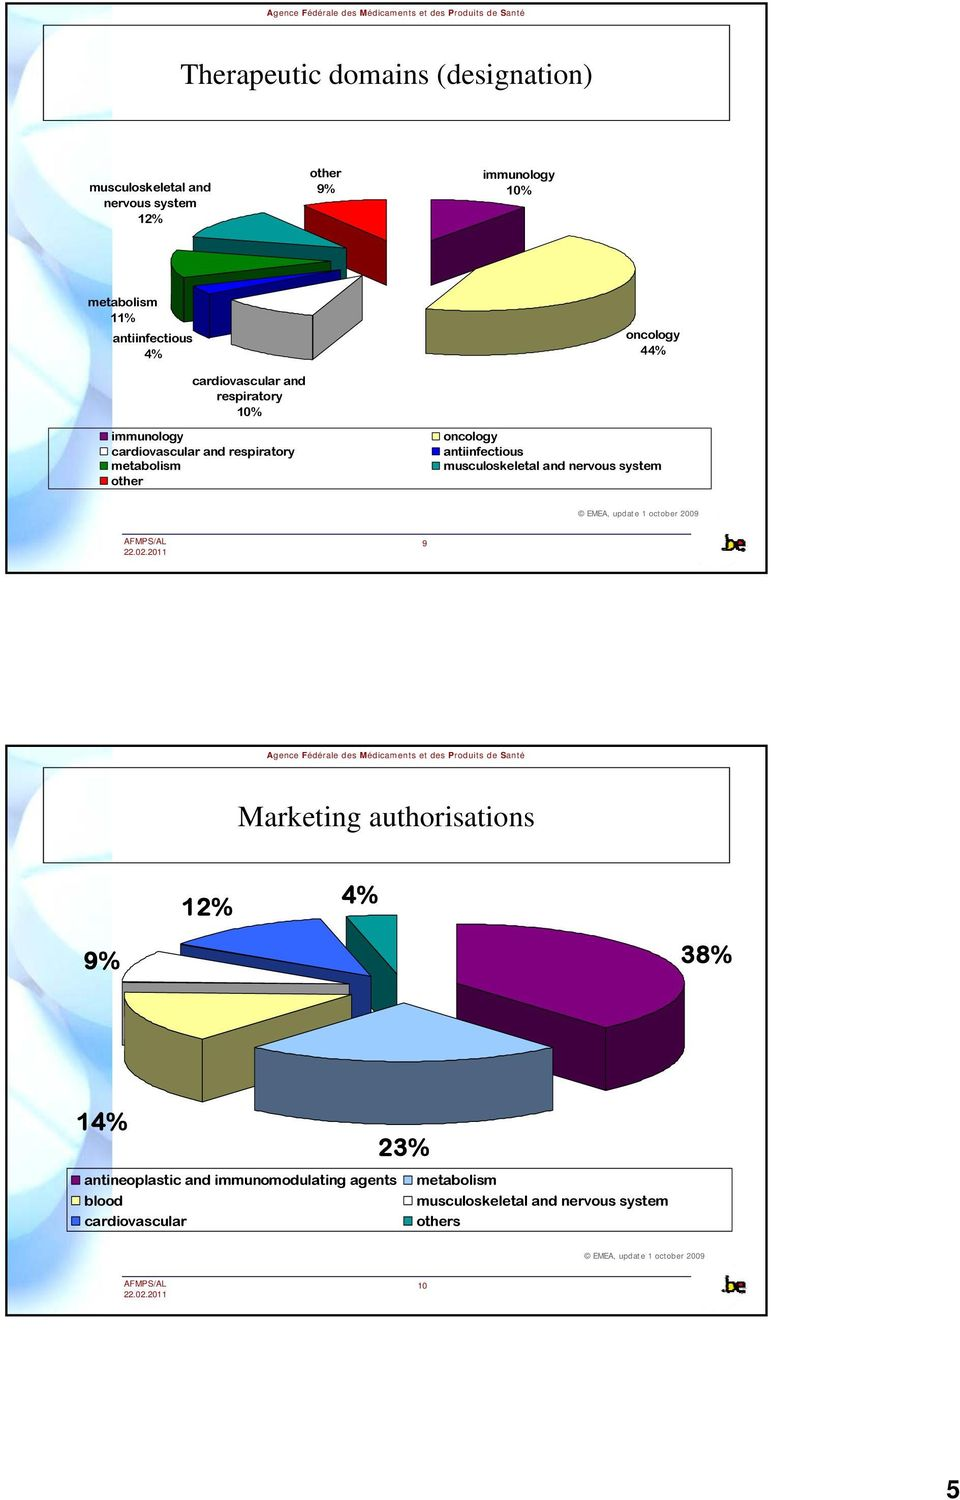 musculoskeletal and nervous system EMEA, update 1 october 2009 9 Marketing authorisations 12% 4% 9% 38% 14% 23% antineoplastic and